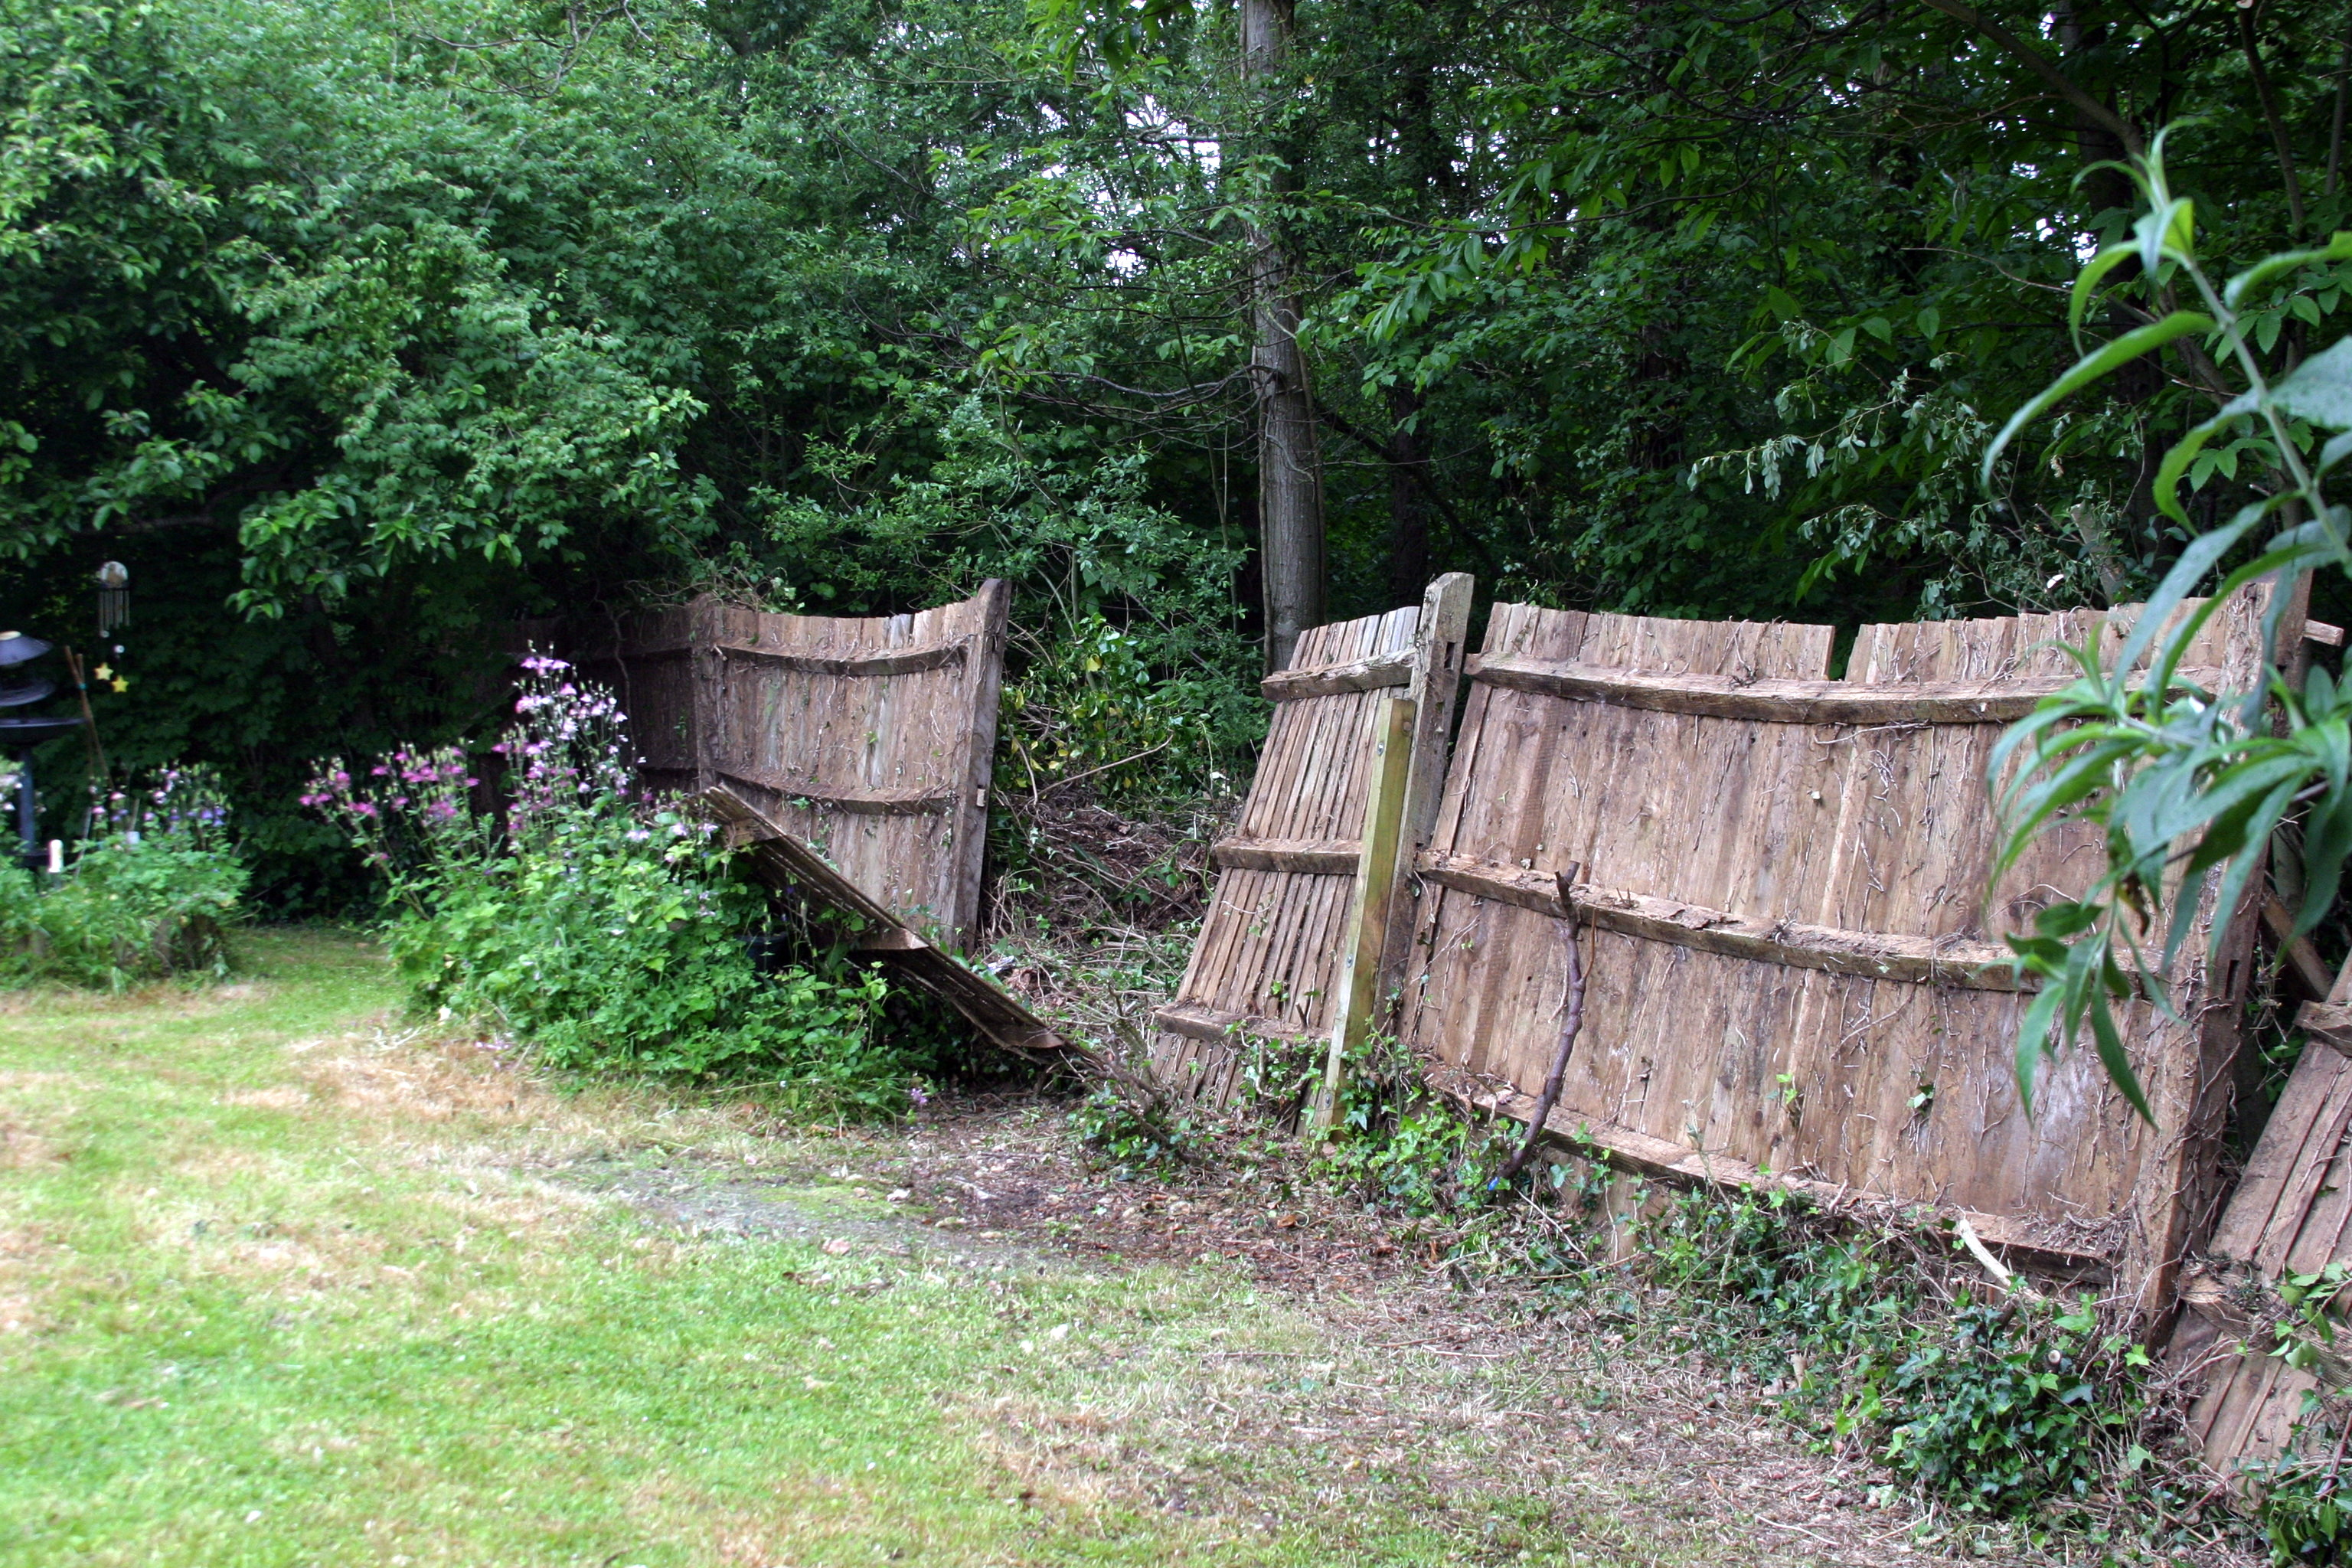 So that's what the fence looks like.